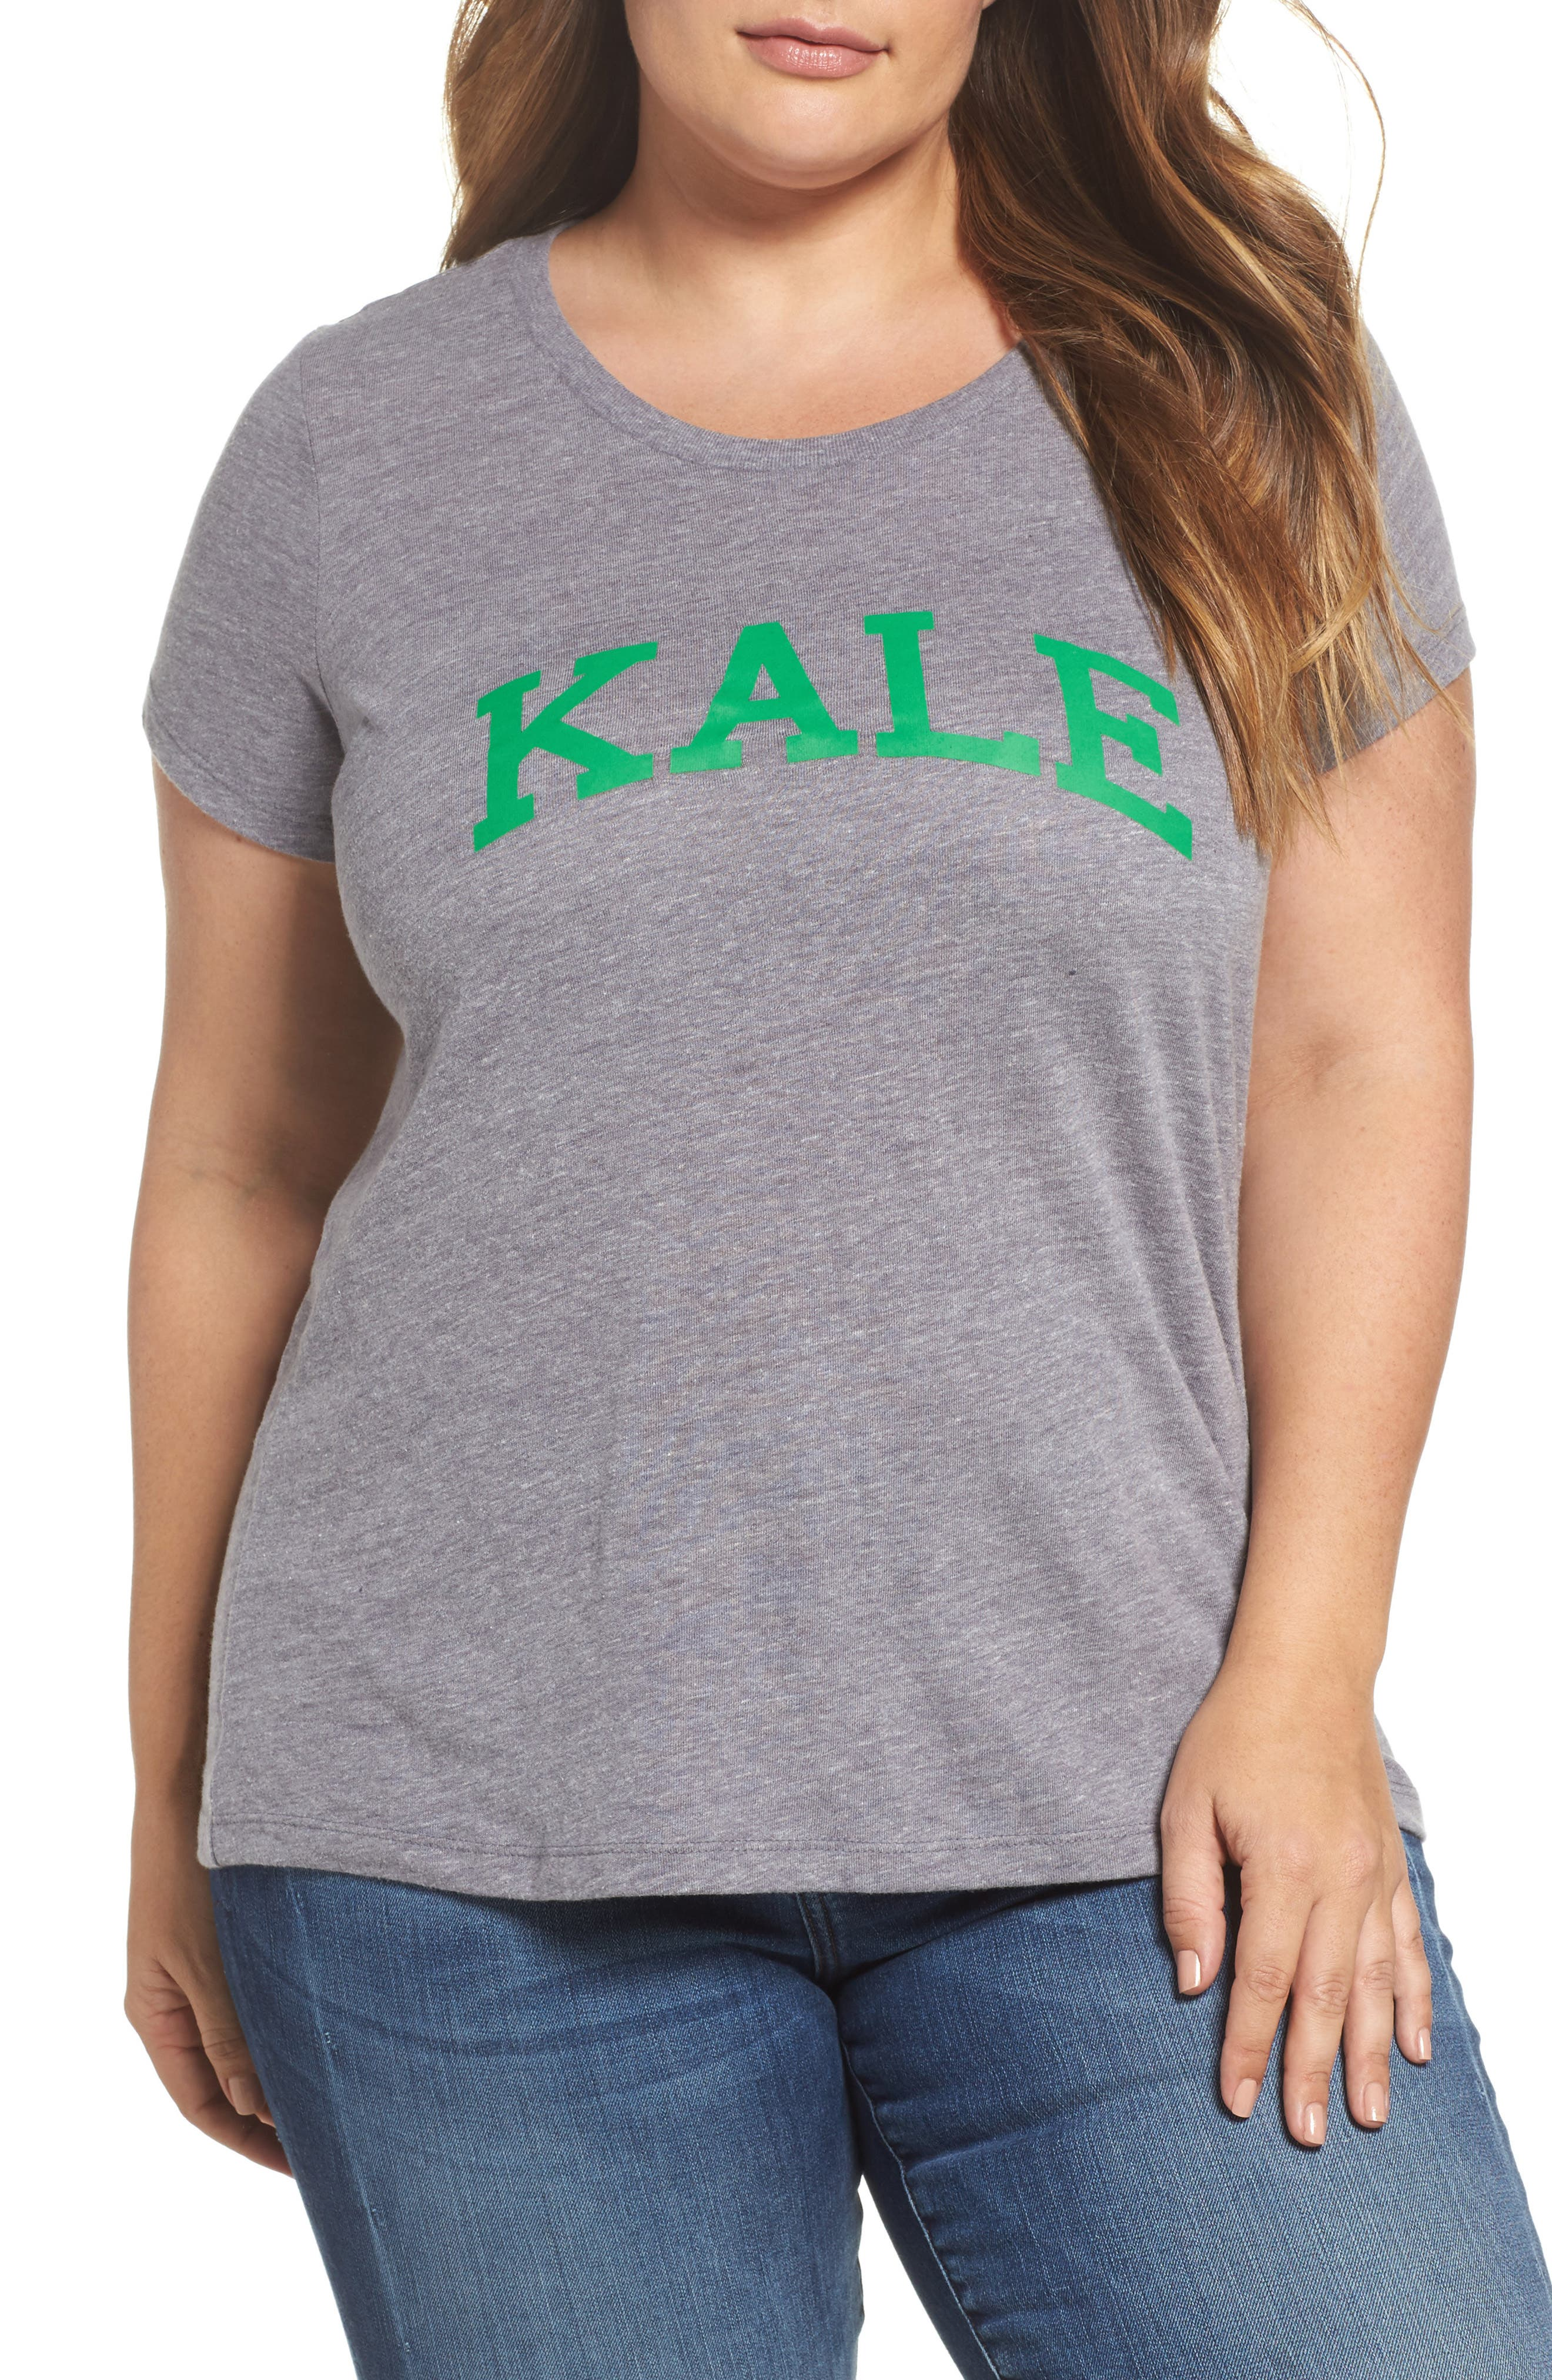 Kale Graphic Tee,                         Main,                         color, 050